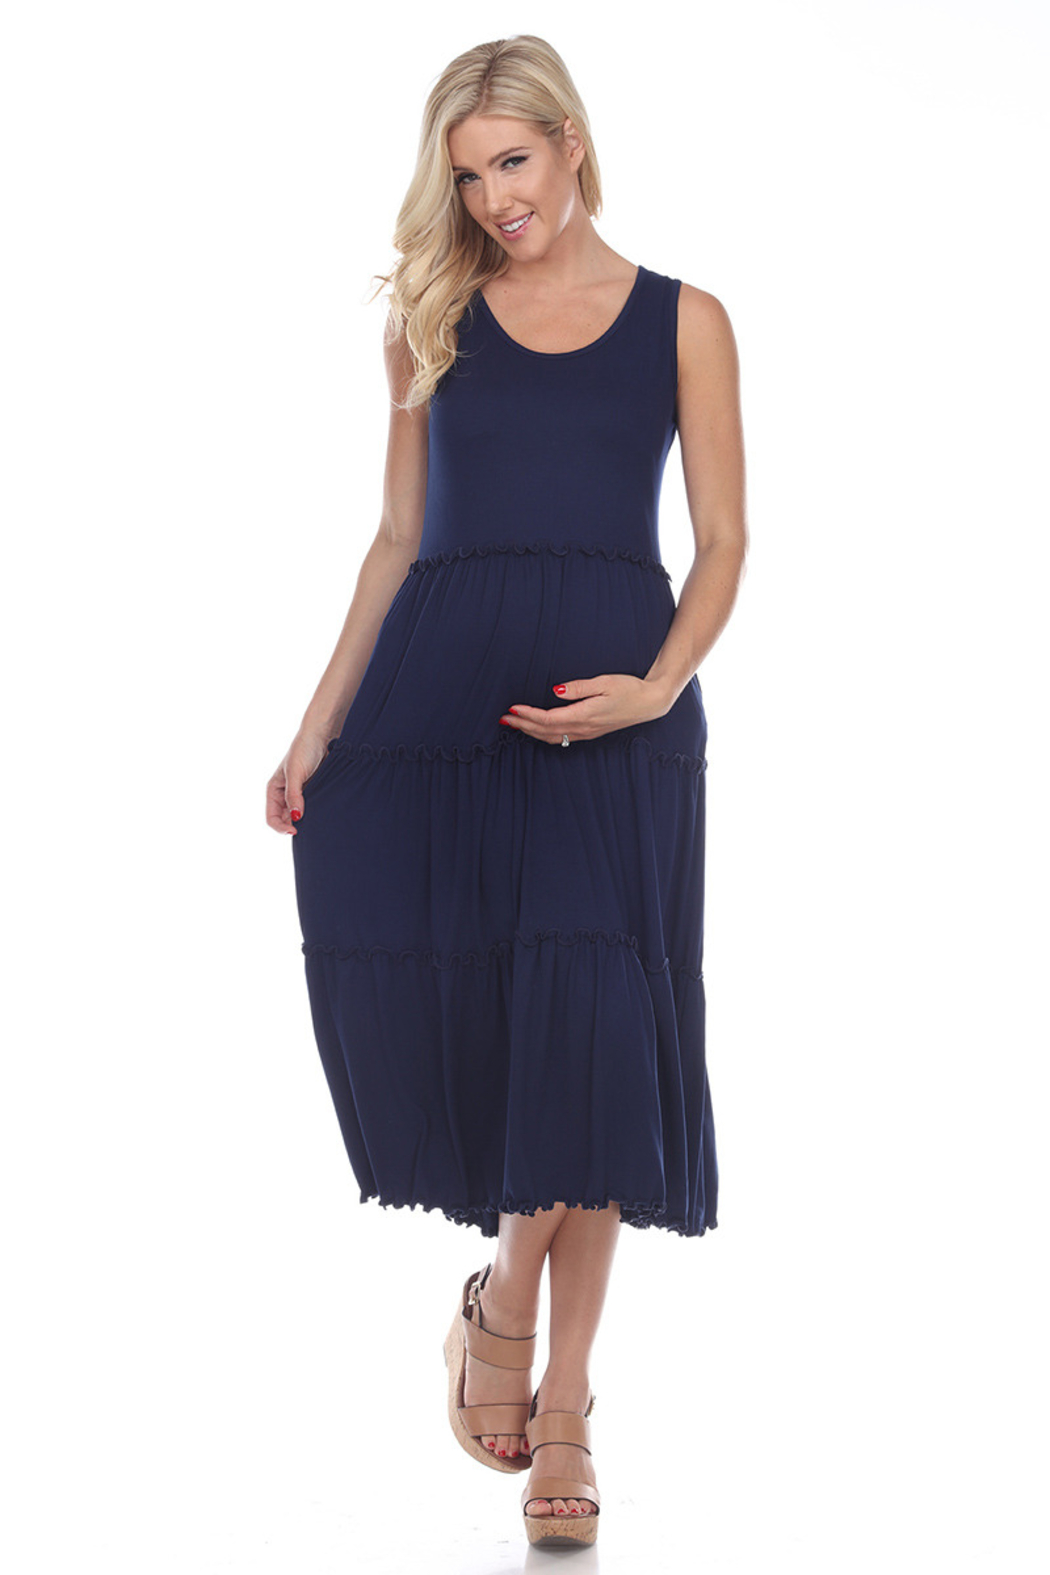 WhiteMark White Mark's Maternity Scoop Neck Tiered Midi Dress - Front Cropped Image